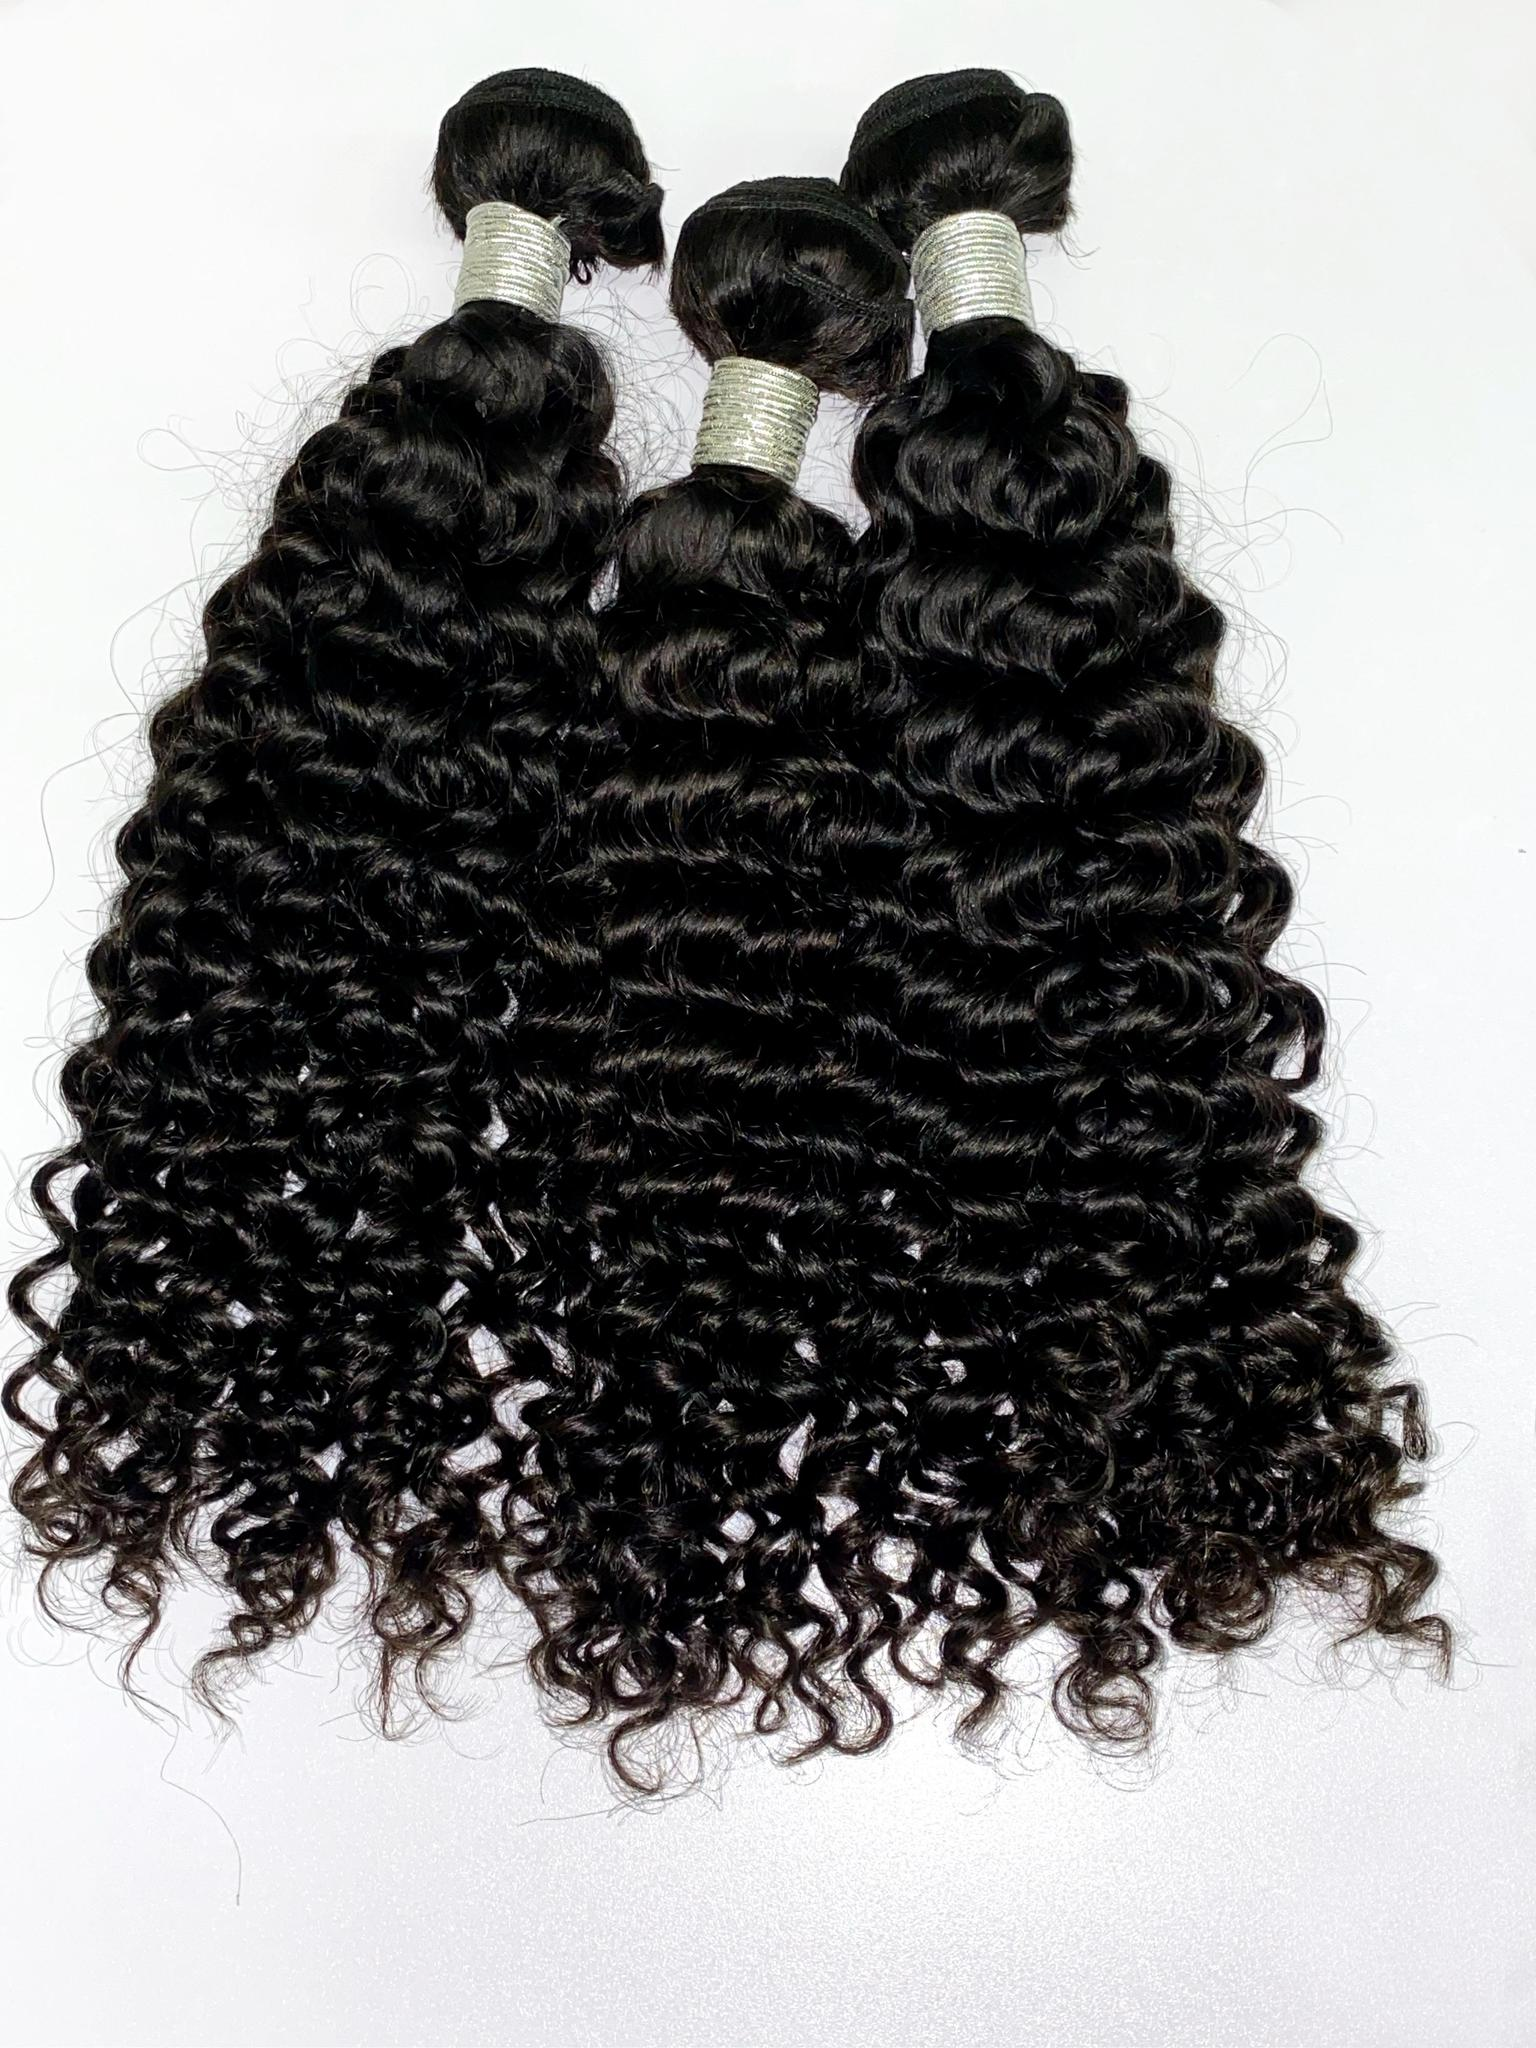 Curly 100% Virgin Human Hair